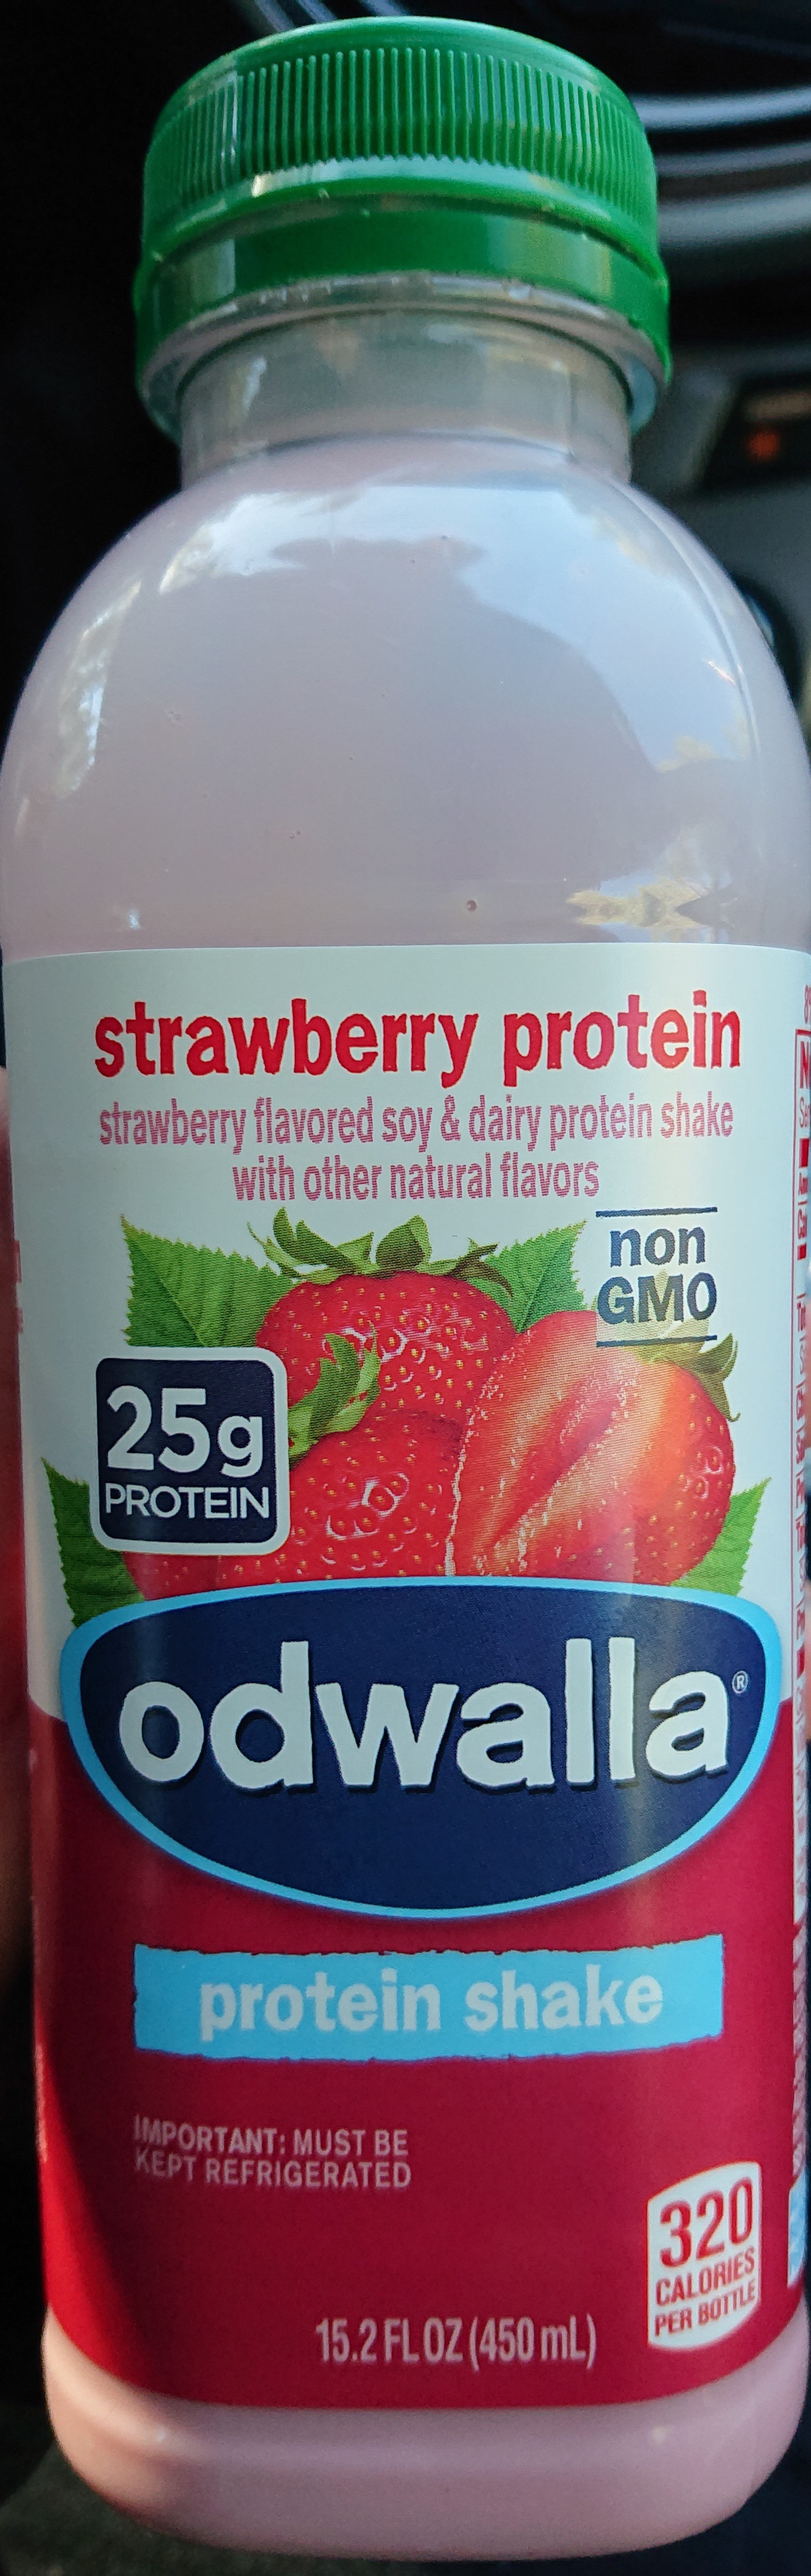 Strawberry protein shake - Product - en